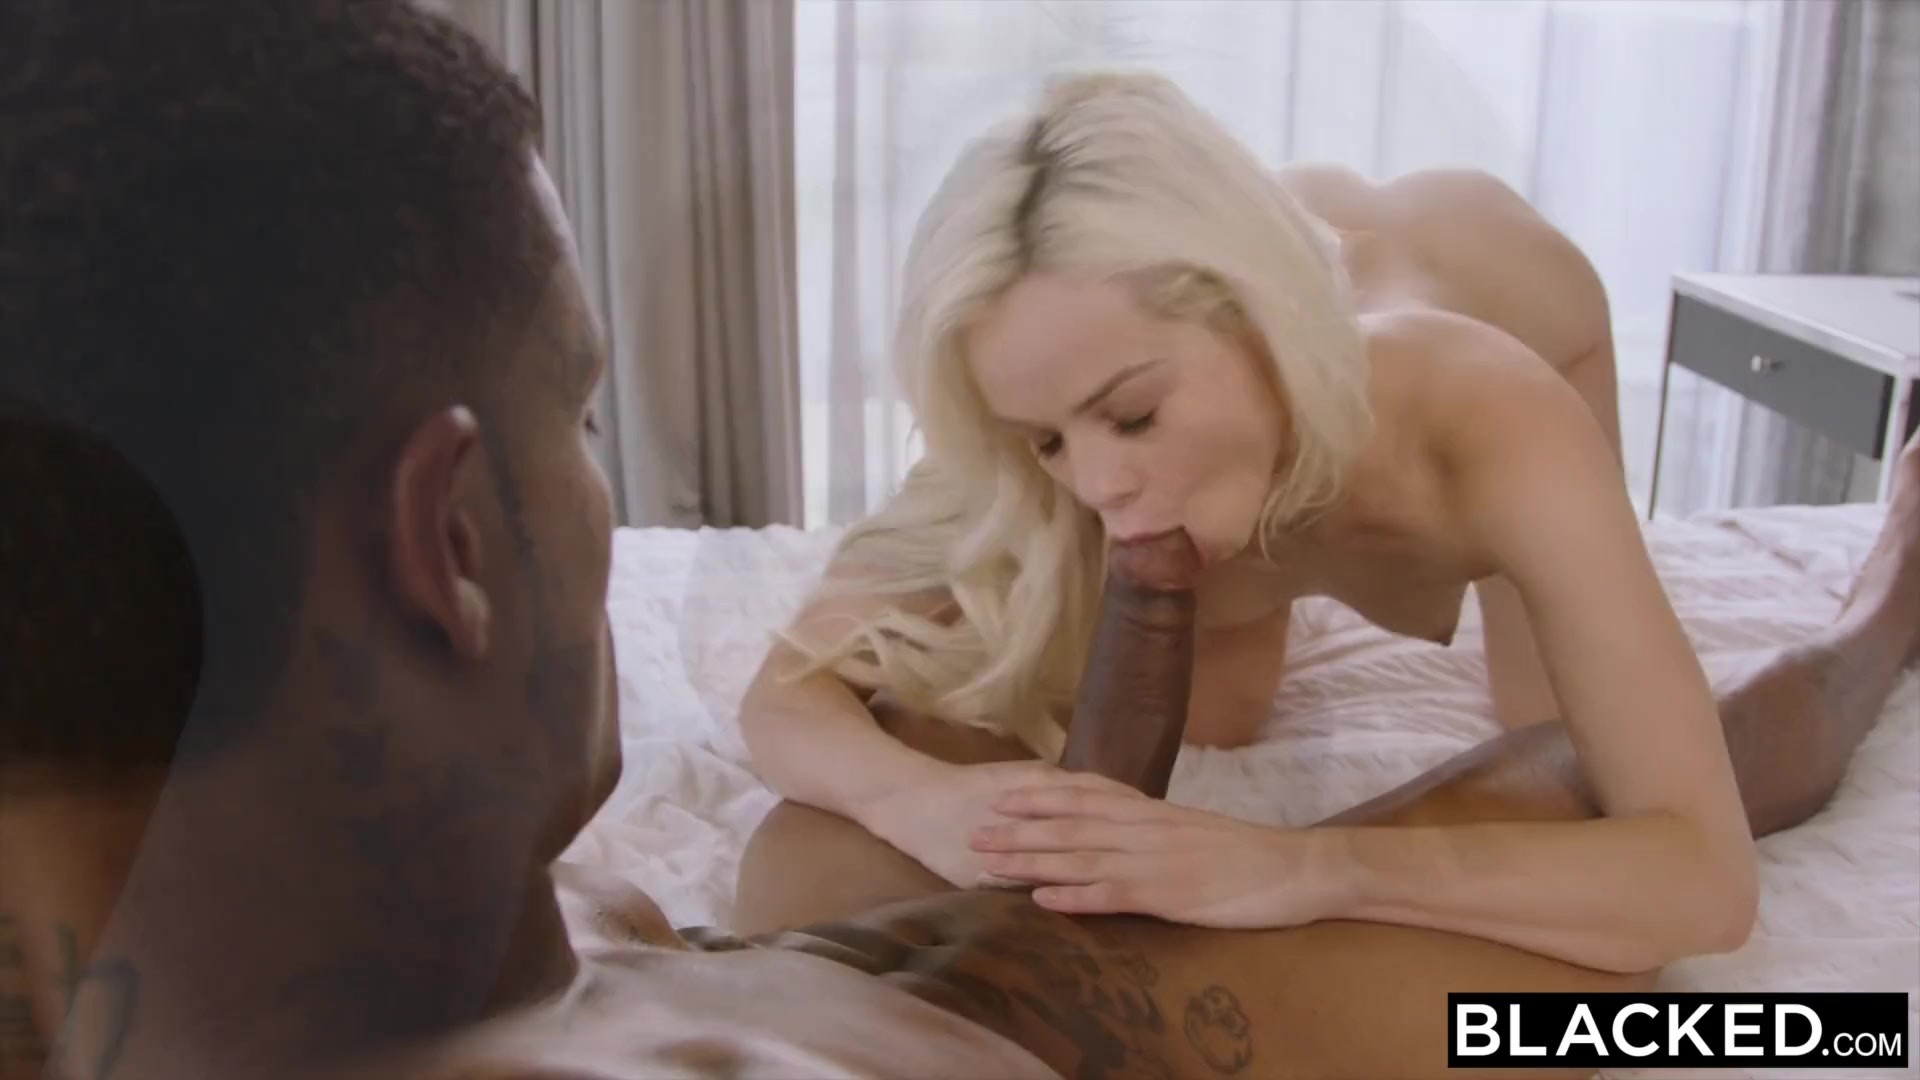 big black dick » free best porn videos hd movies, adult mature tube